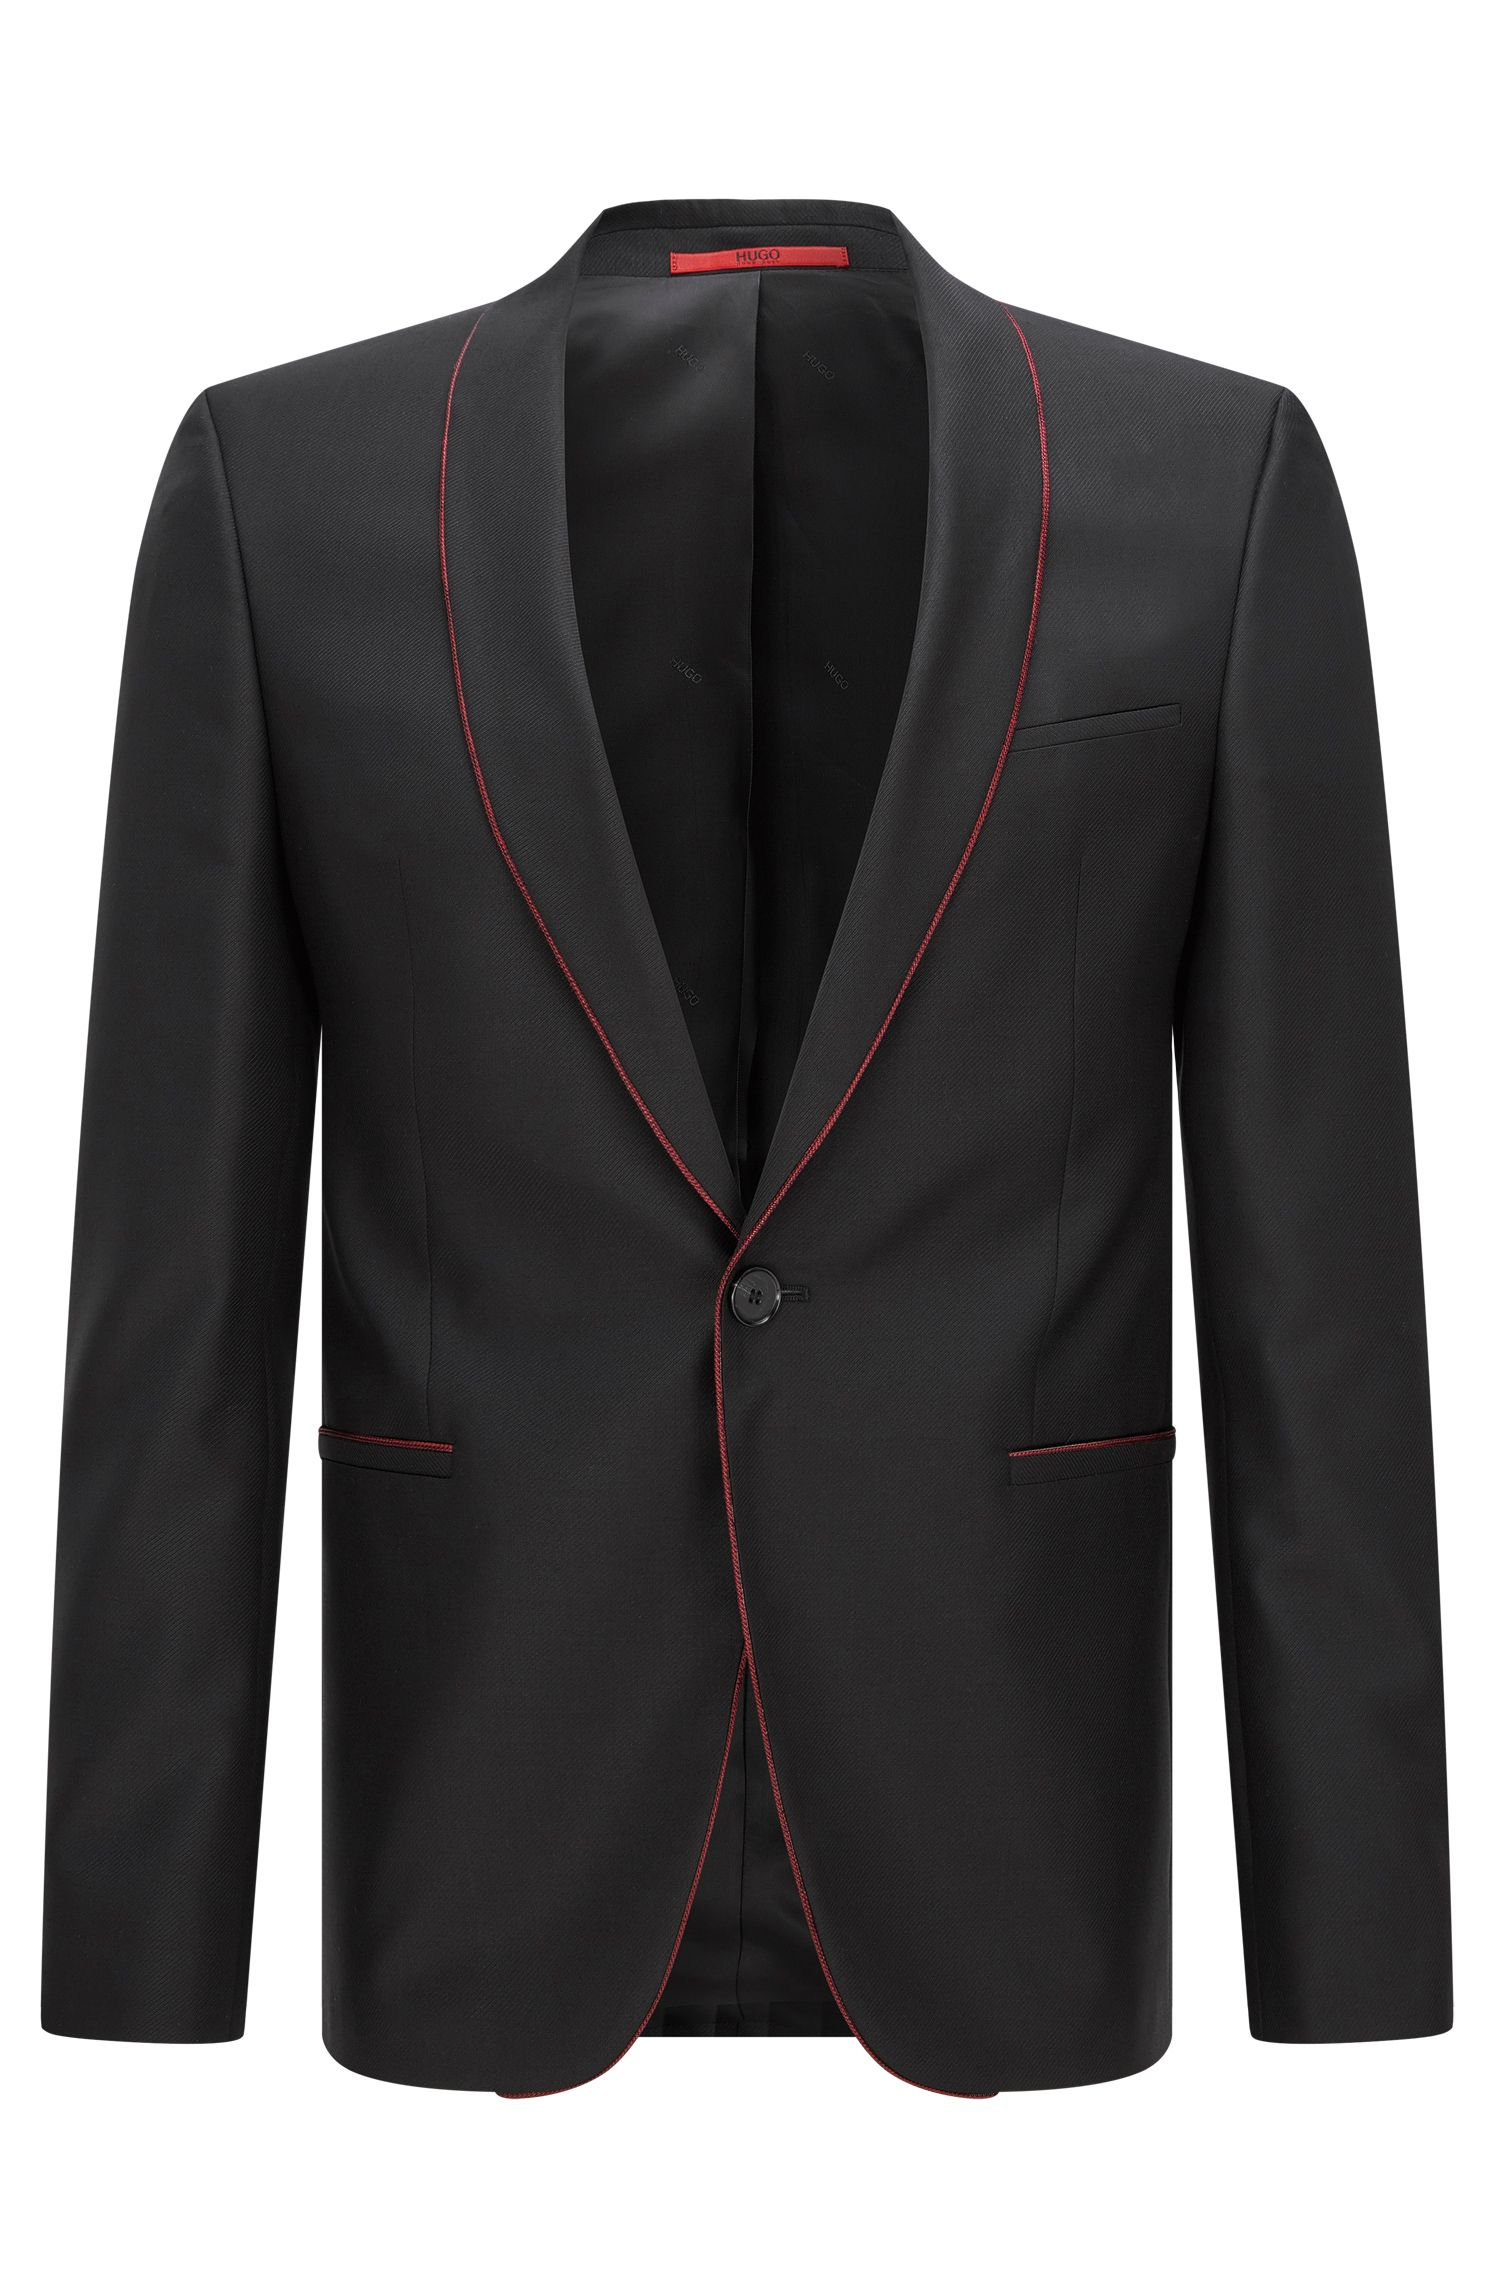 Contrast Virgin Wool Blend Sport Coat, Slim Fit | Arins